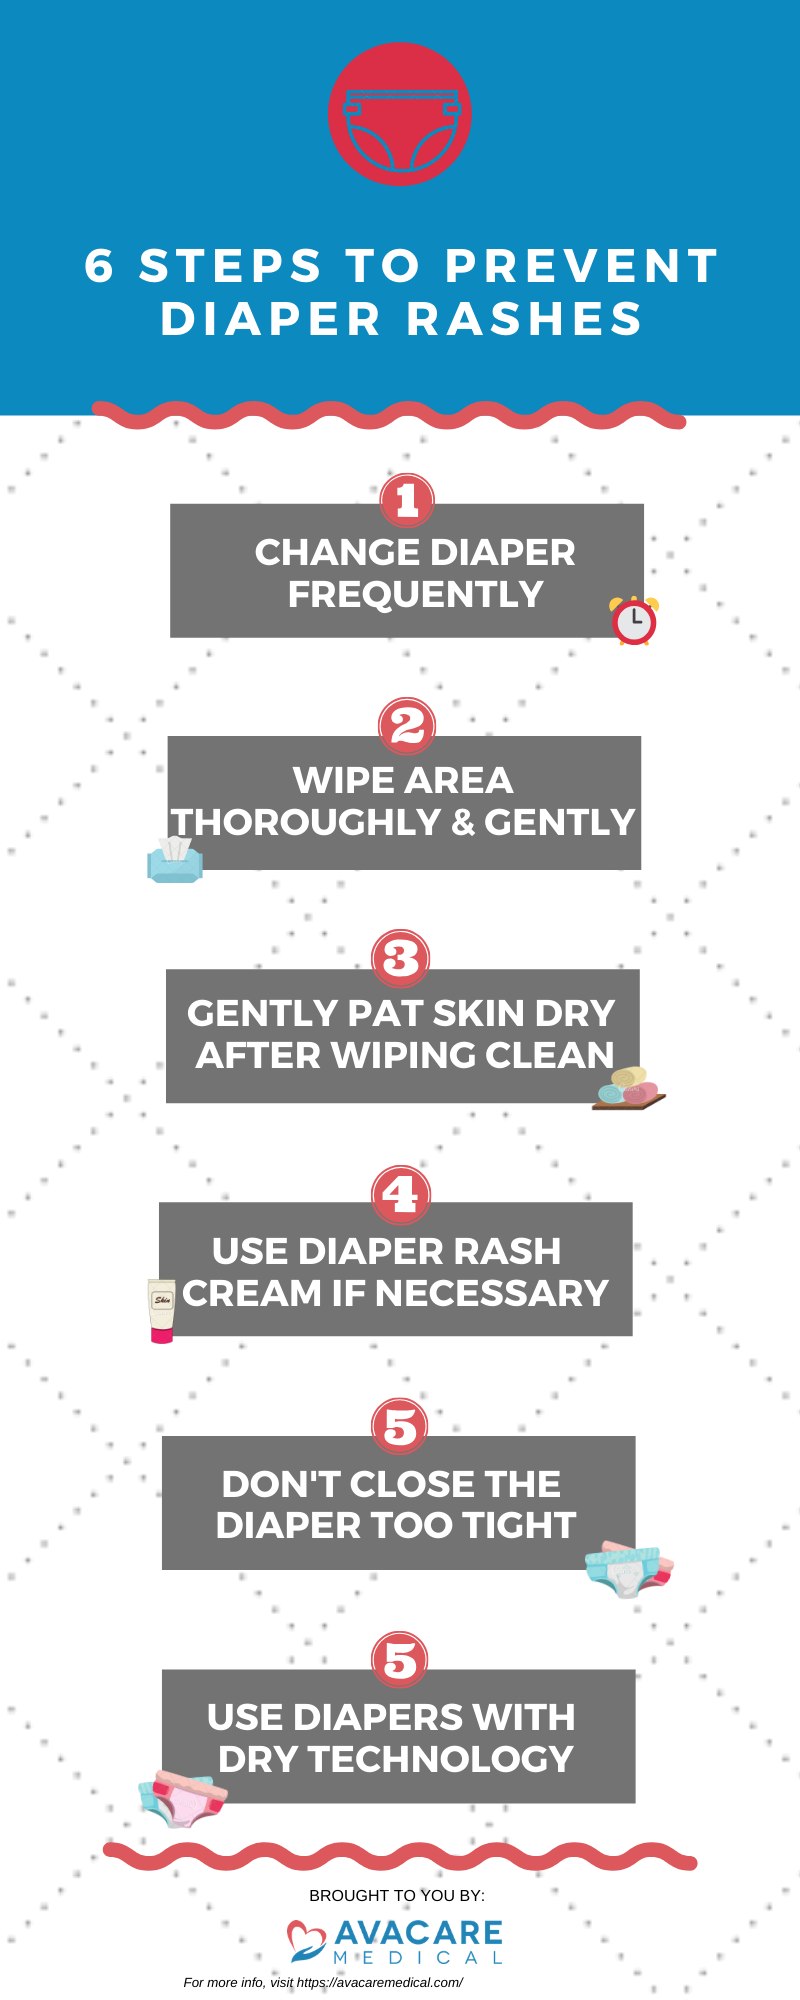 6 STEPS TO PREVENT DIAPER RASHES: 1. Change diaper frequently; 2. Wipe area thoroughly & gently; 3. Gently pat skin dry after wiping clean; 4. Use diaper rash cream if necessary; 5. Don't close the diaper too tight; 6. Use diapers with dry technology